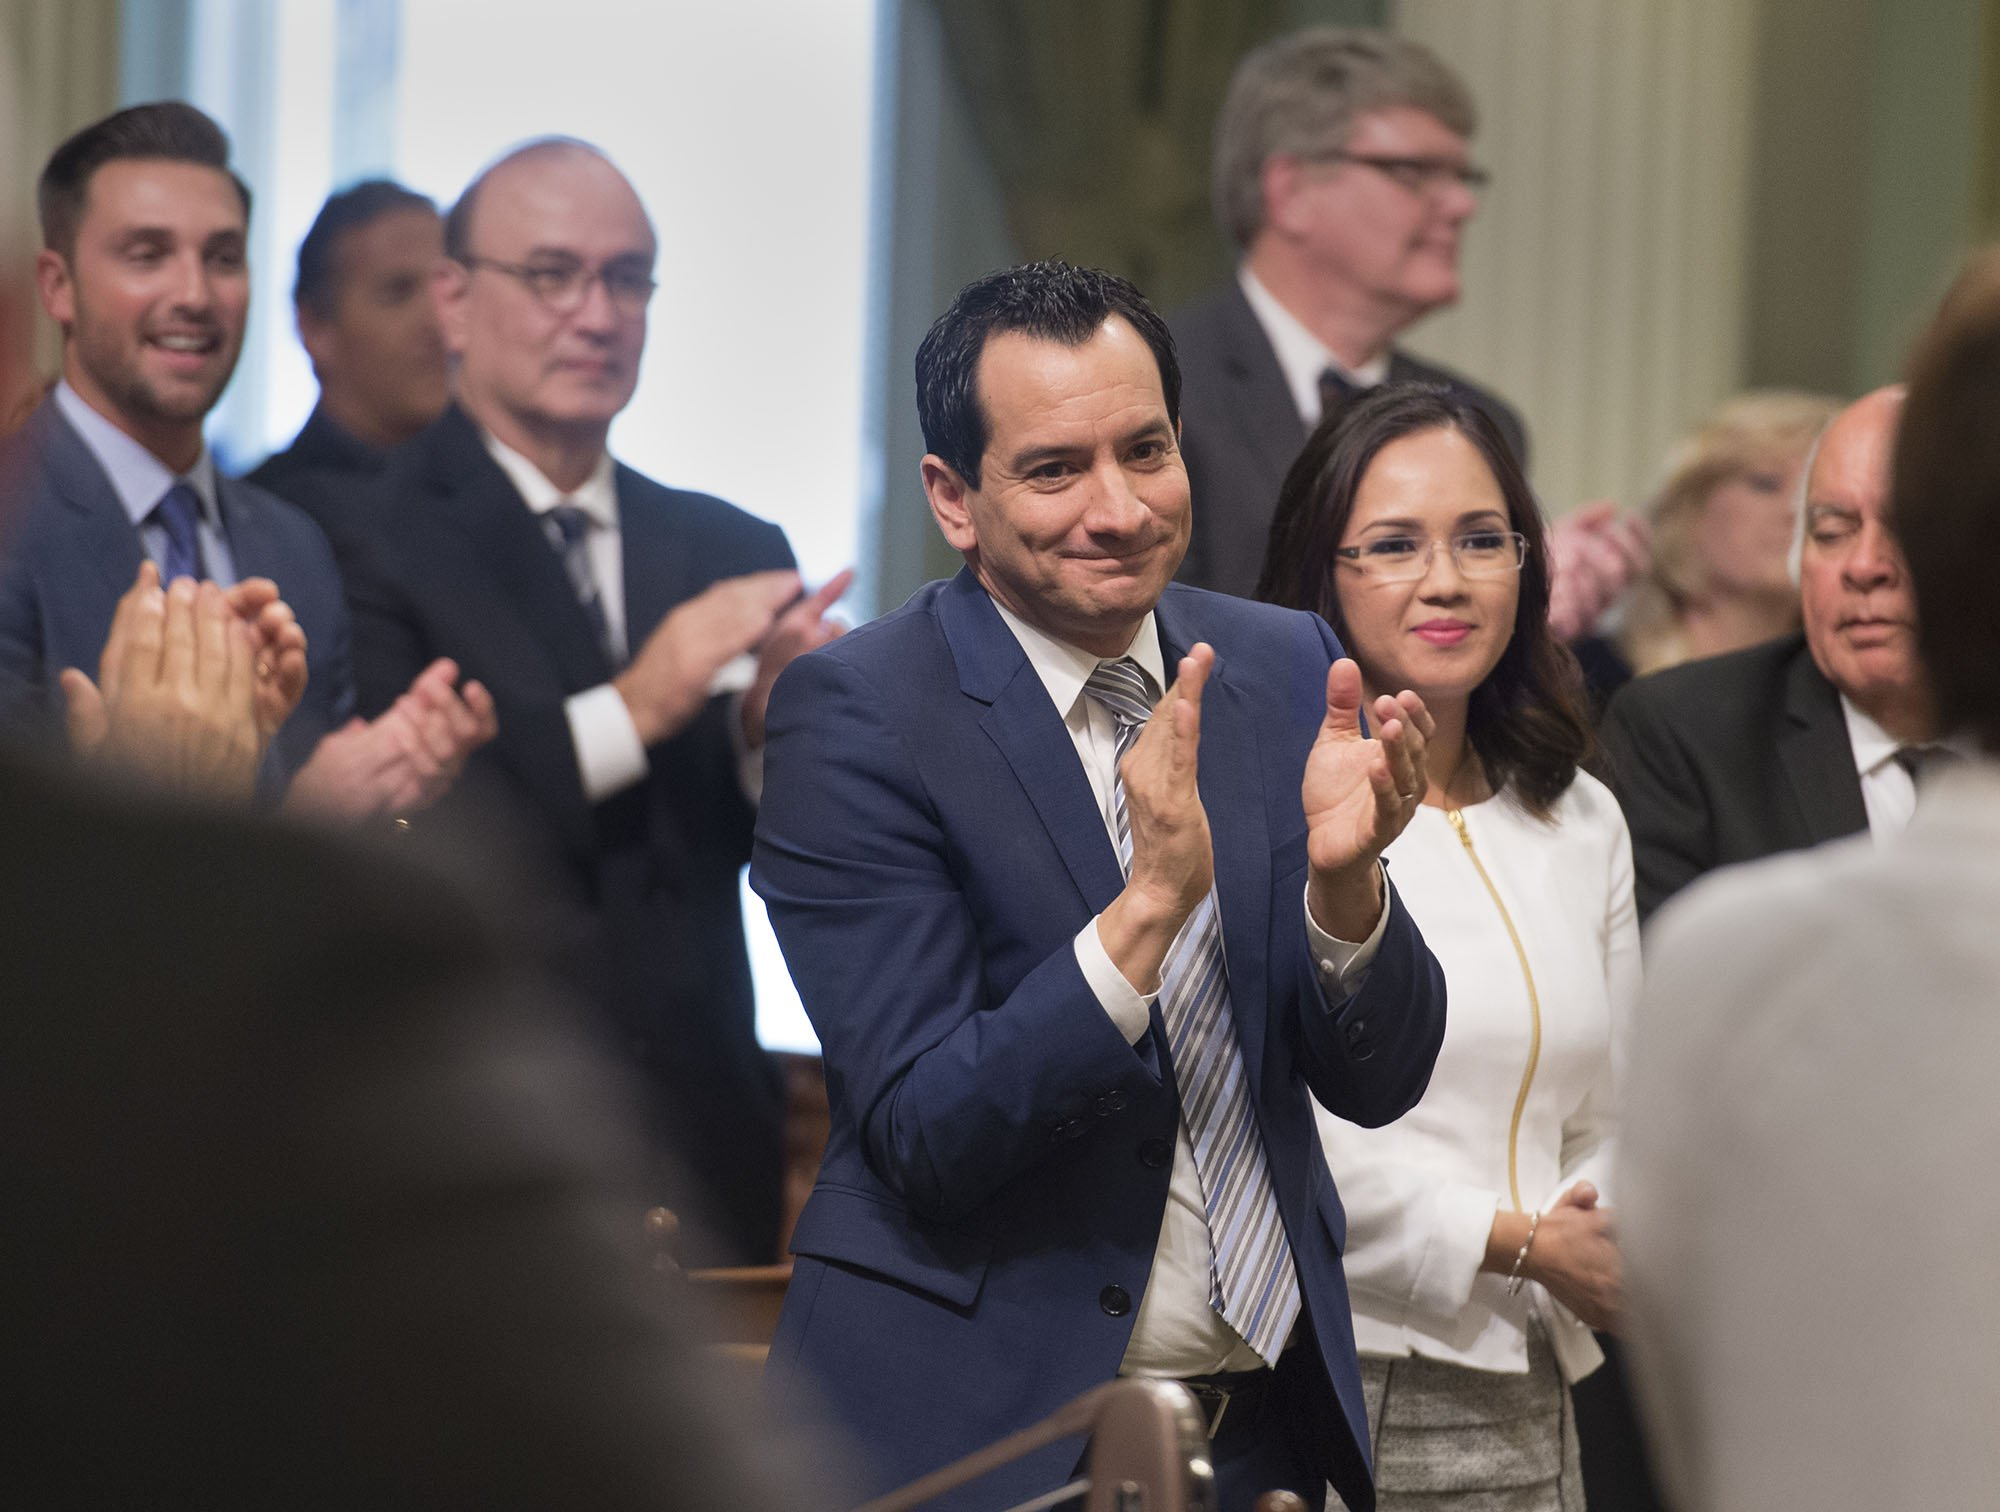 Since California speaker rose to power, corporate donations flowed to nonprofits tied to his wife